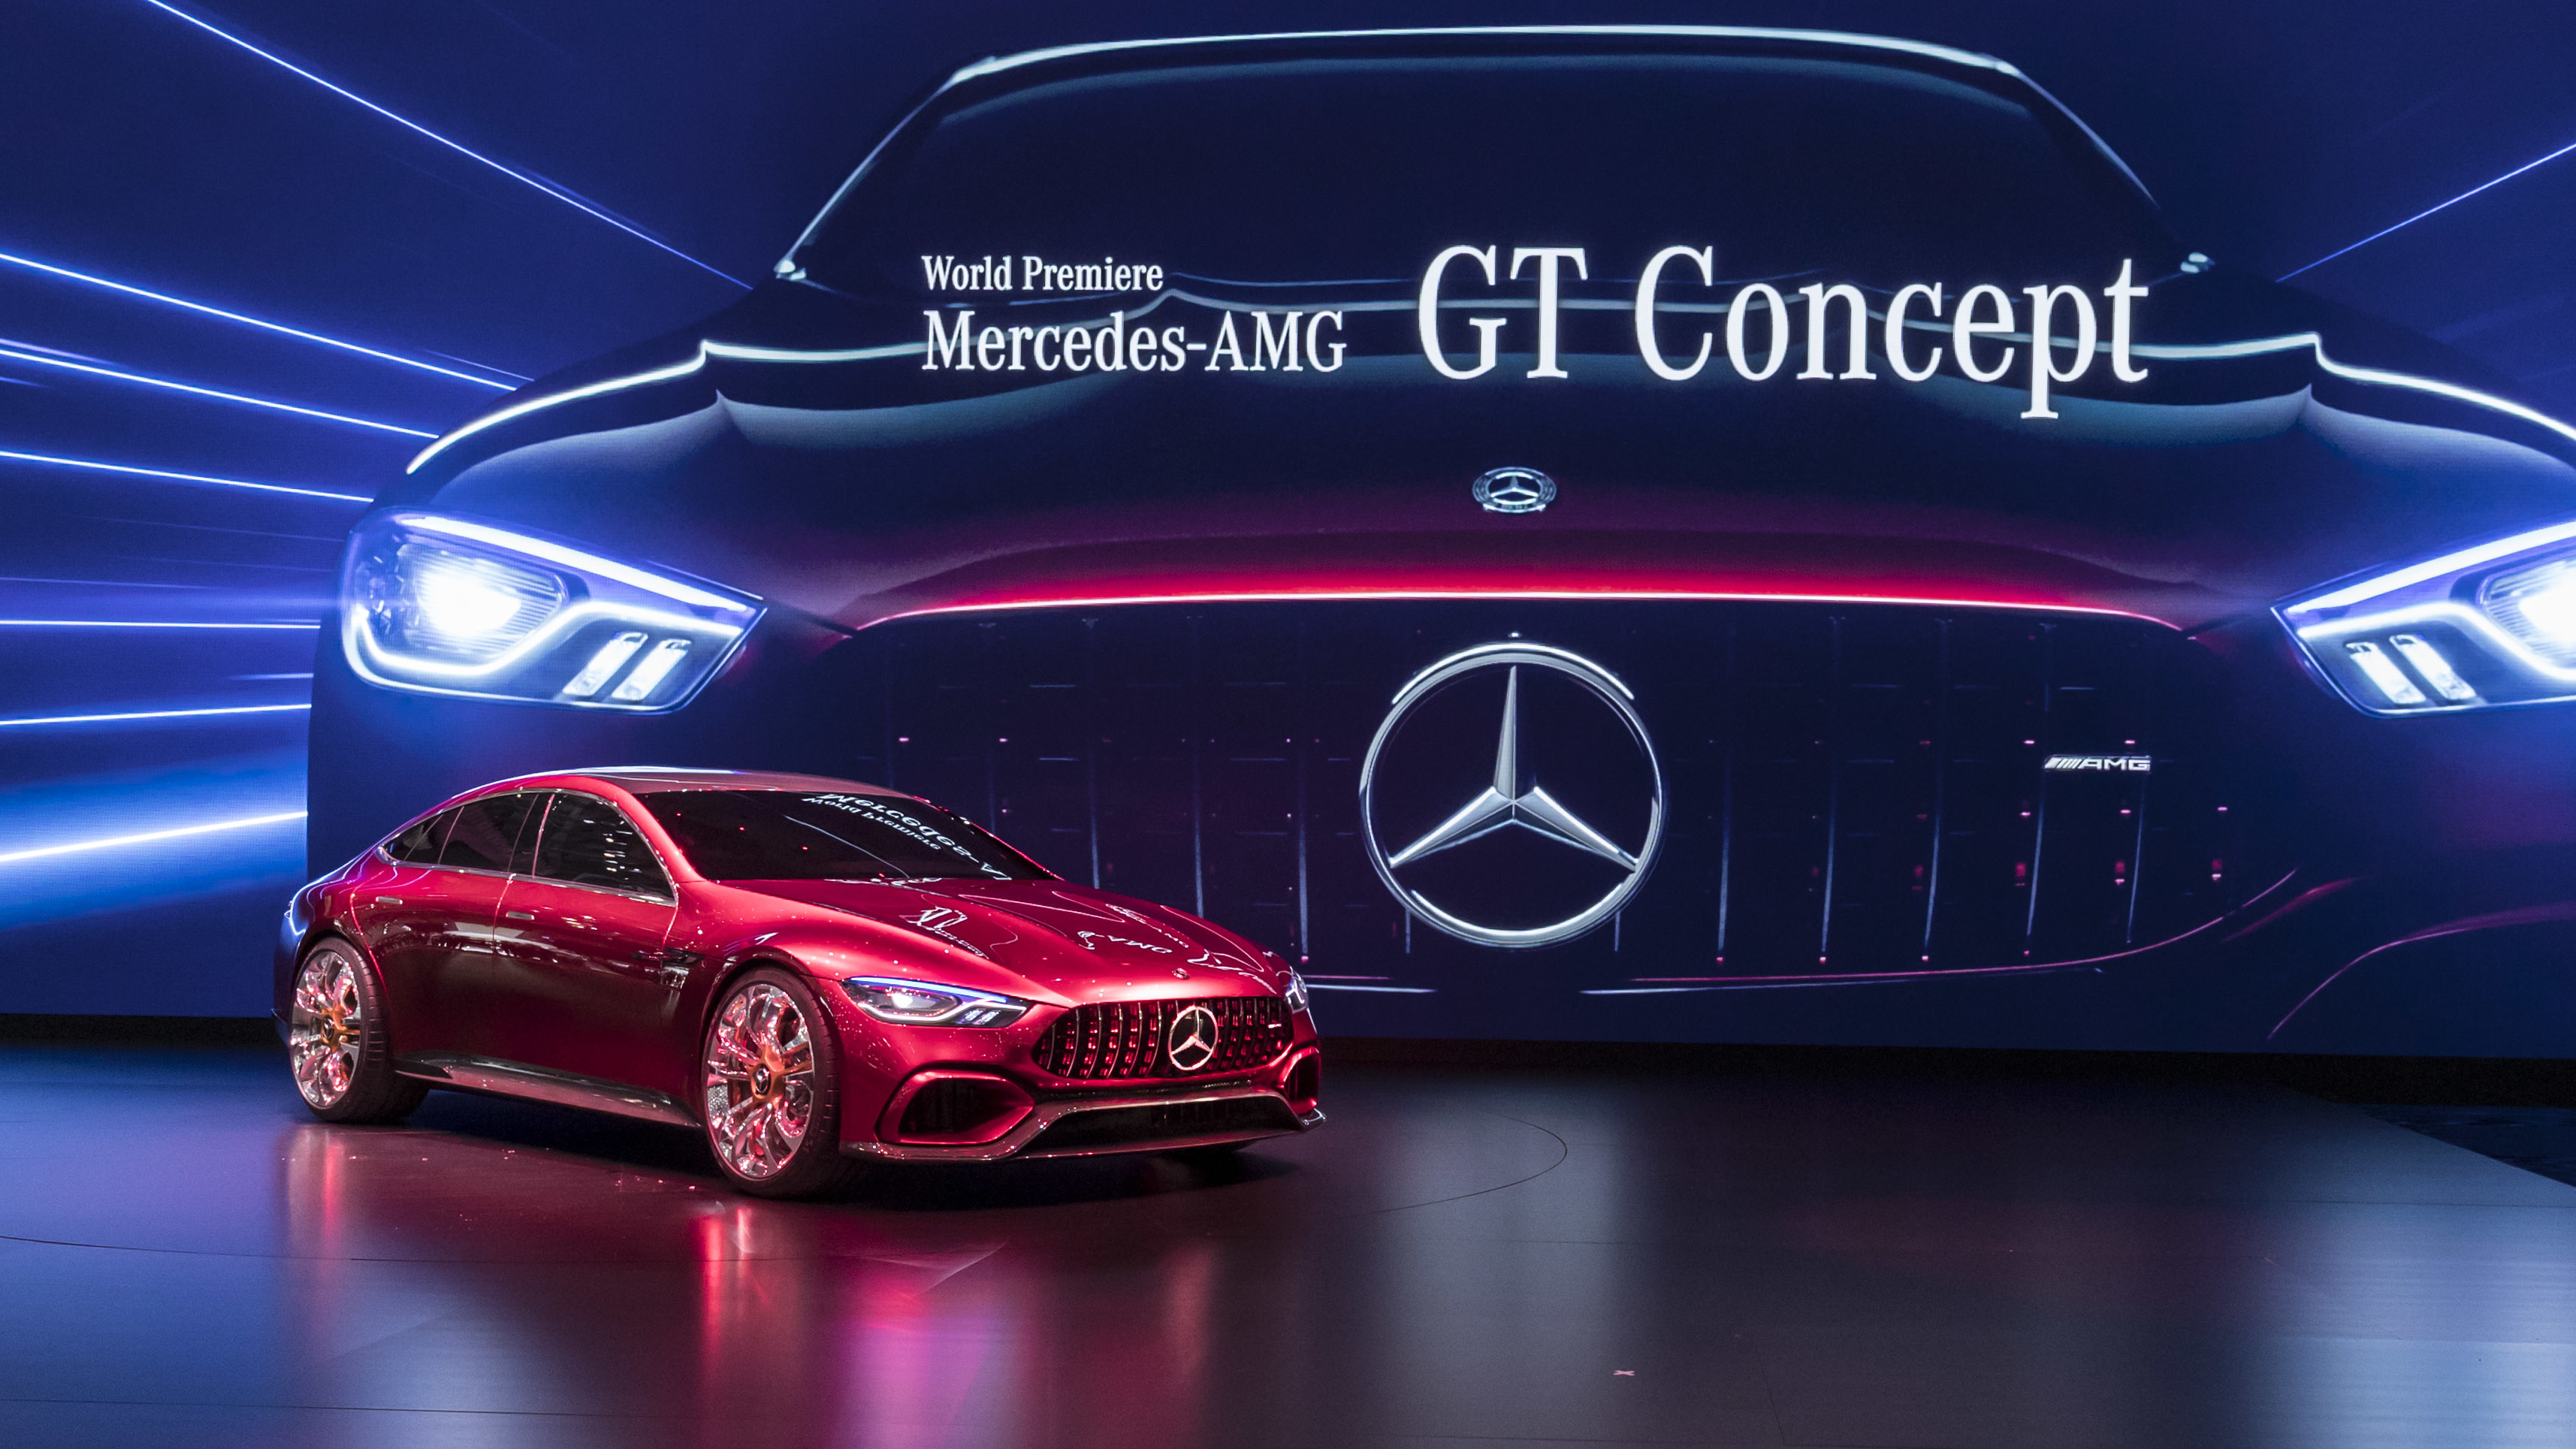 Amg Gt Concept >> Mercedes Amg Gt Concept Geneve Veho Oy Ab